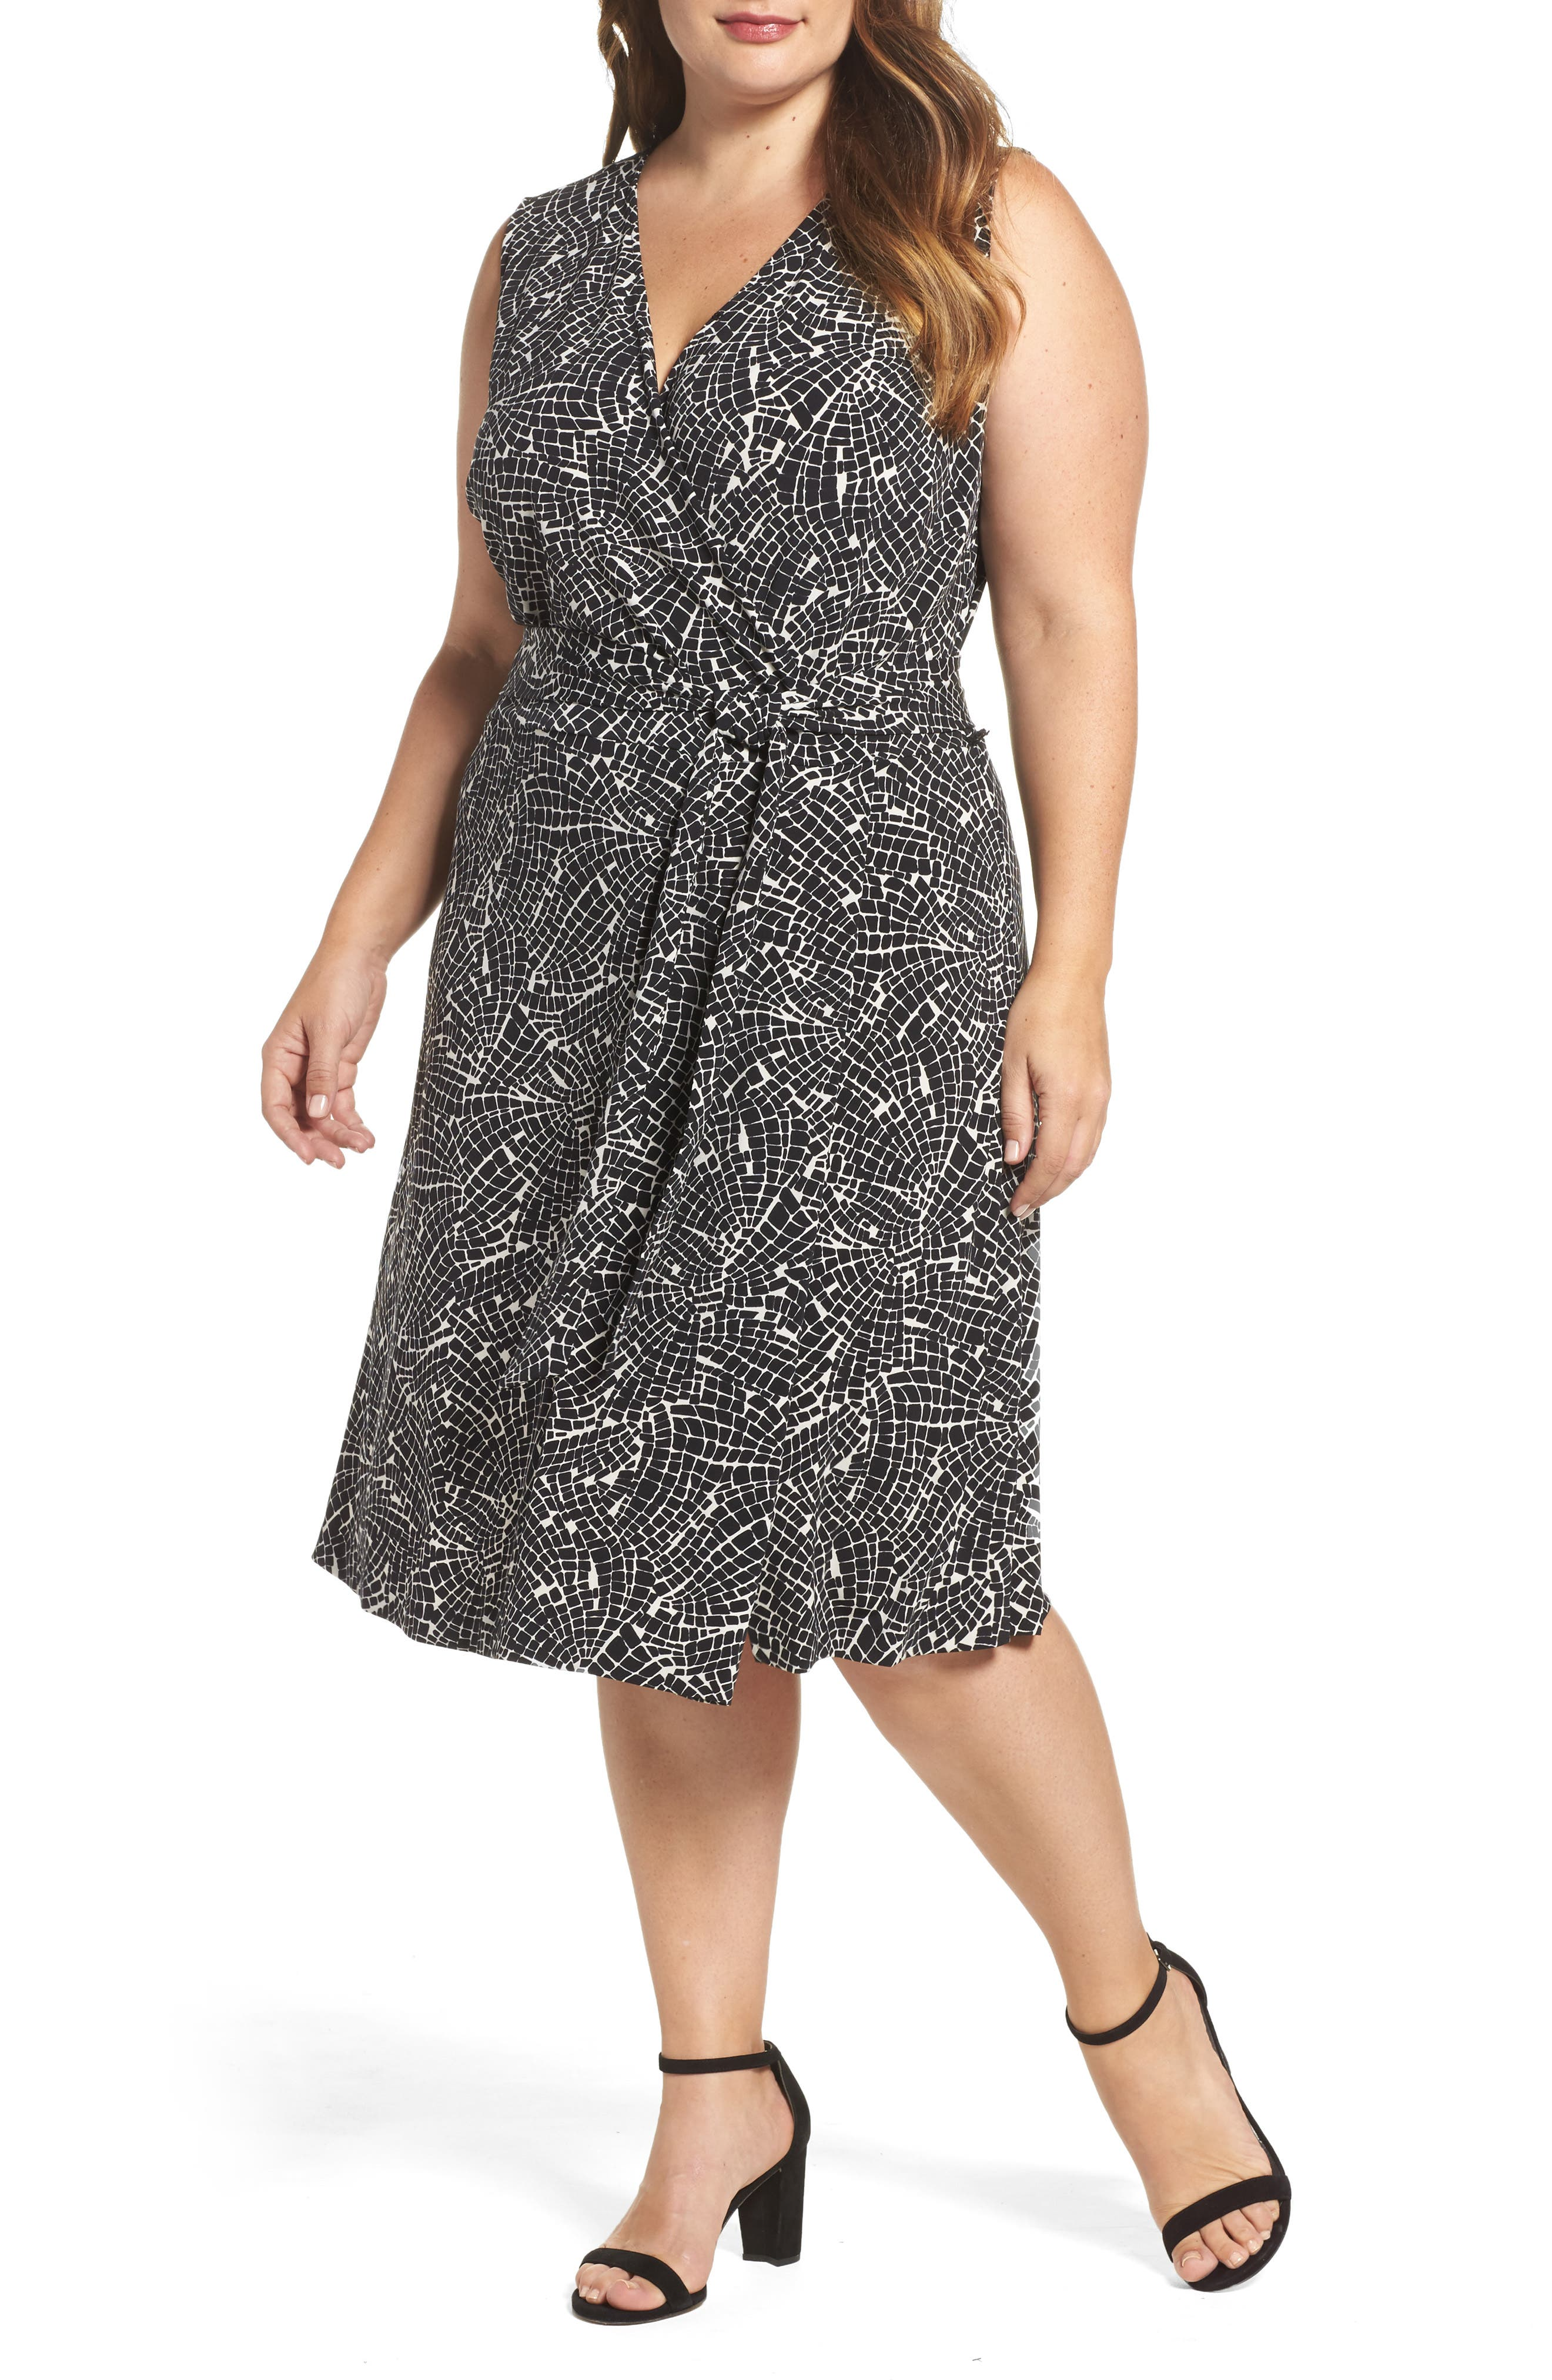 Alternate Image 1 Selected - Vince Camuto Modern Mosaic Wrap Dress (Plus Size)